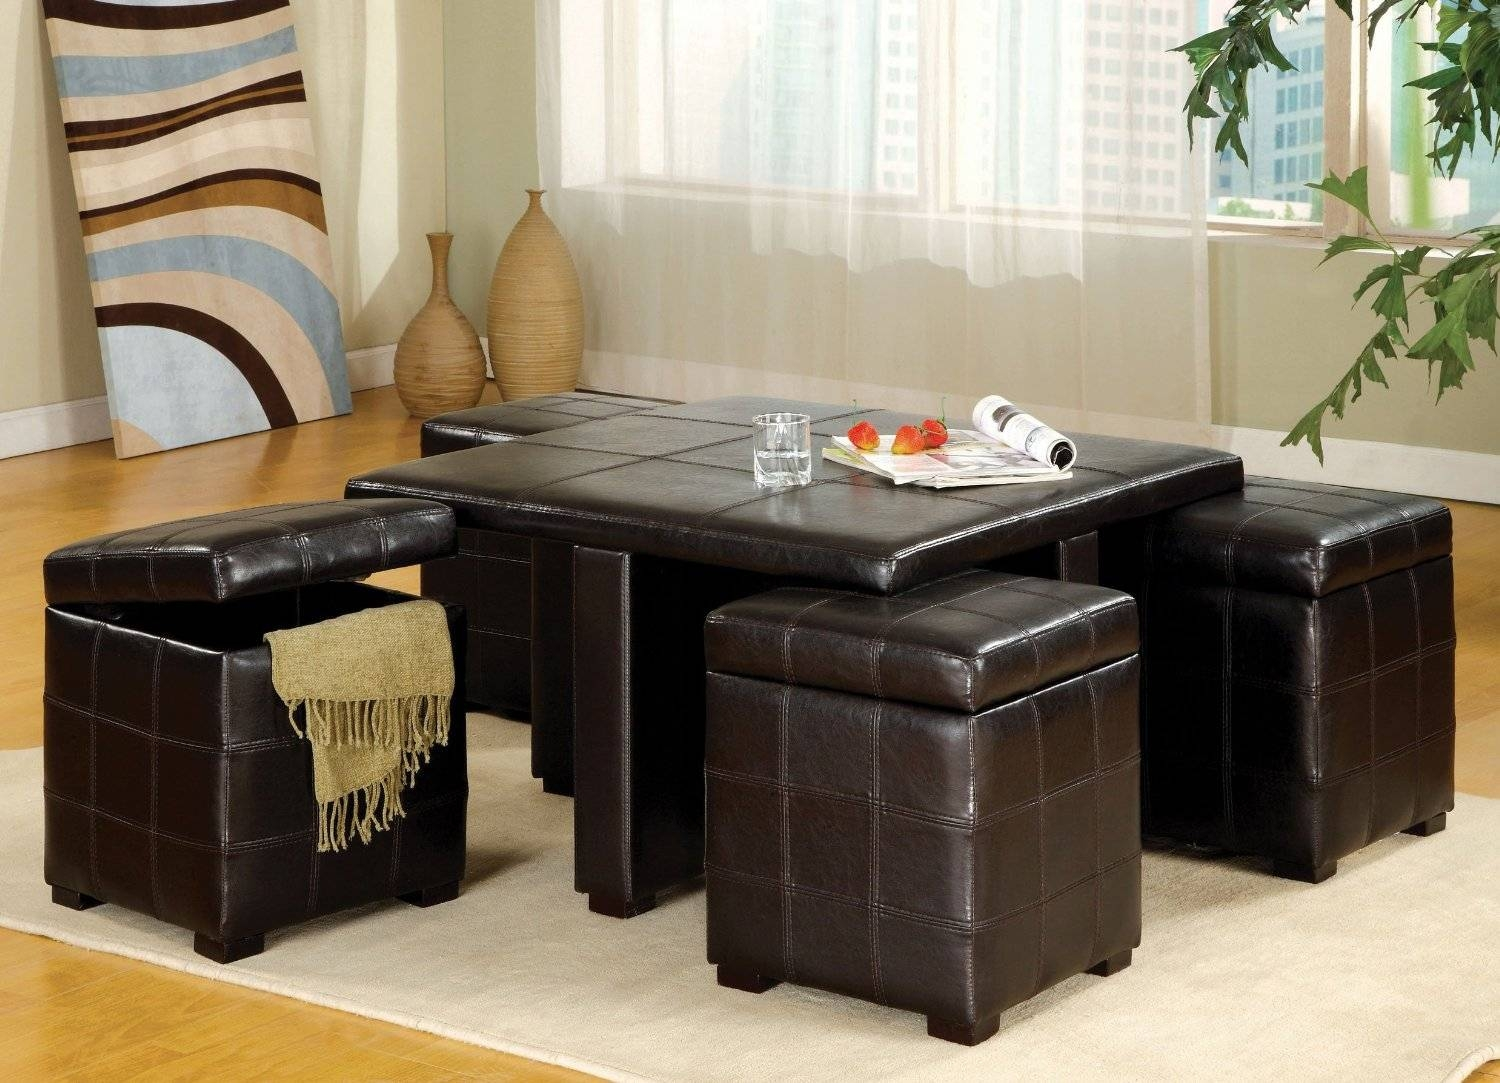 Leather Ottoman Coffee Table Storage | Coffee Tables Decoration with regard to Square Coffee Tables With Storage (Image 19 of 30)